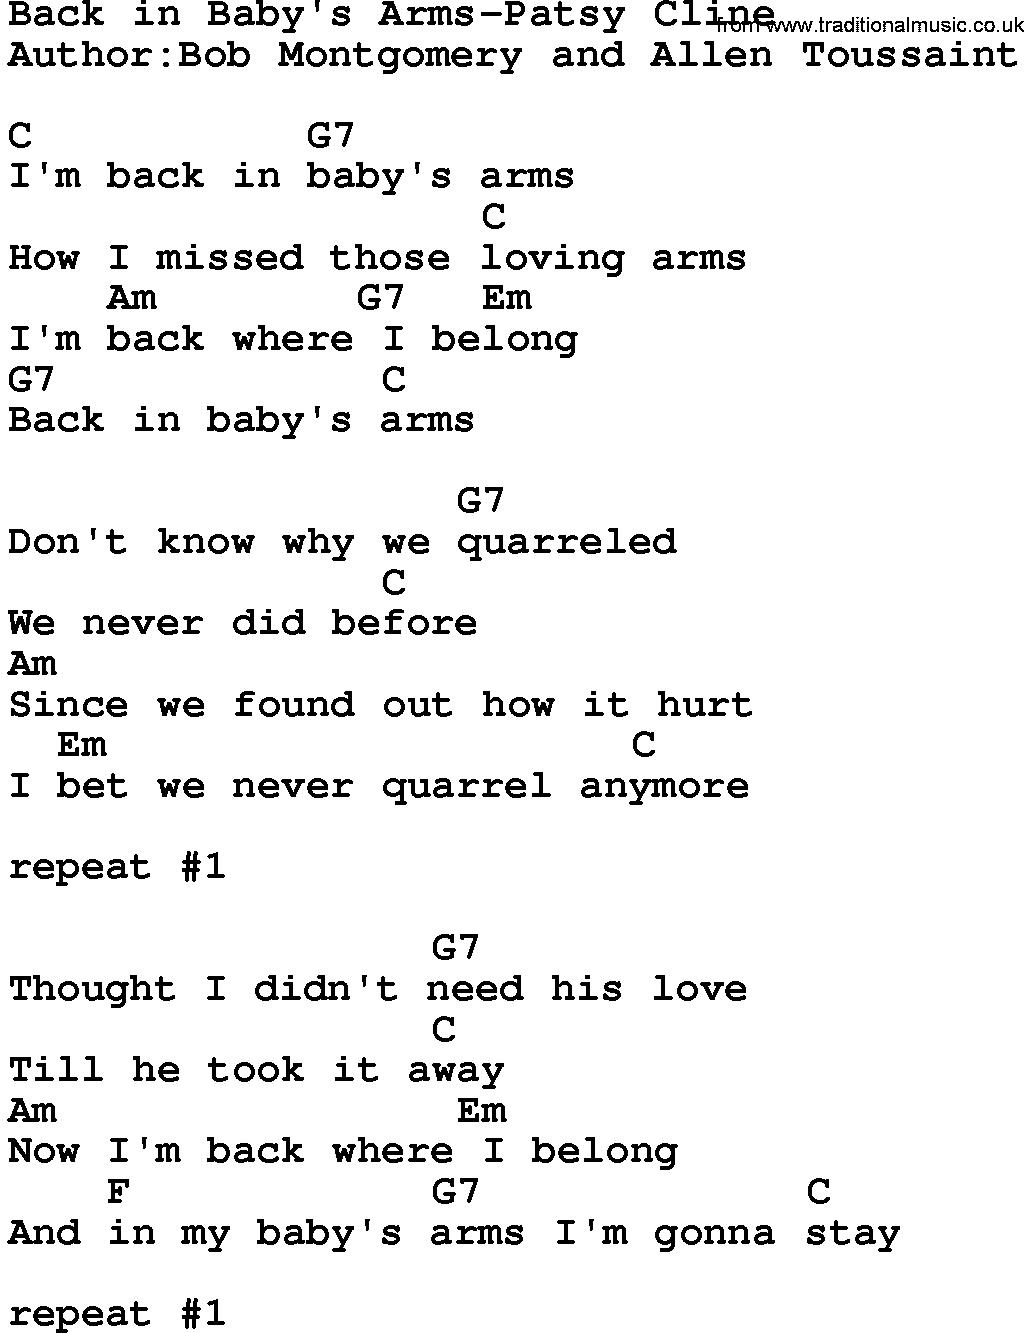 Country Music Song Back In Babys Arms Patsy Cline Lyrics And